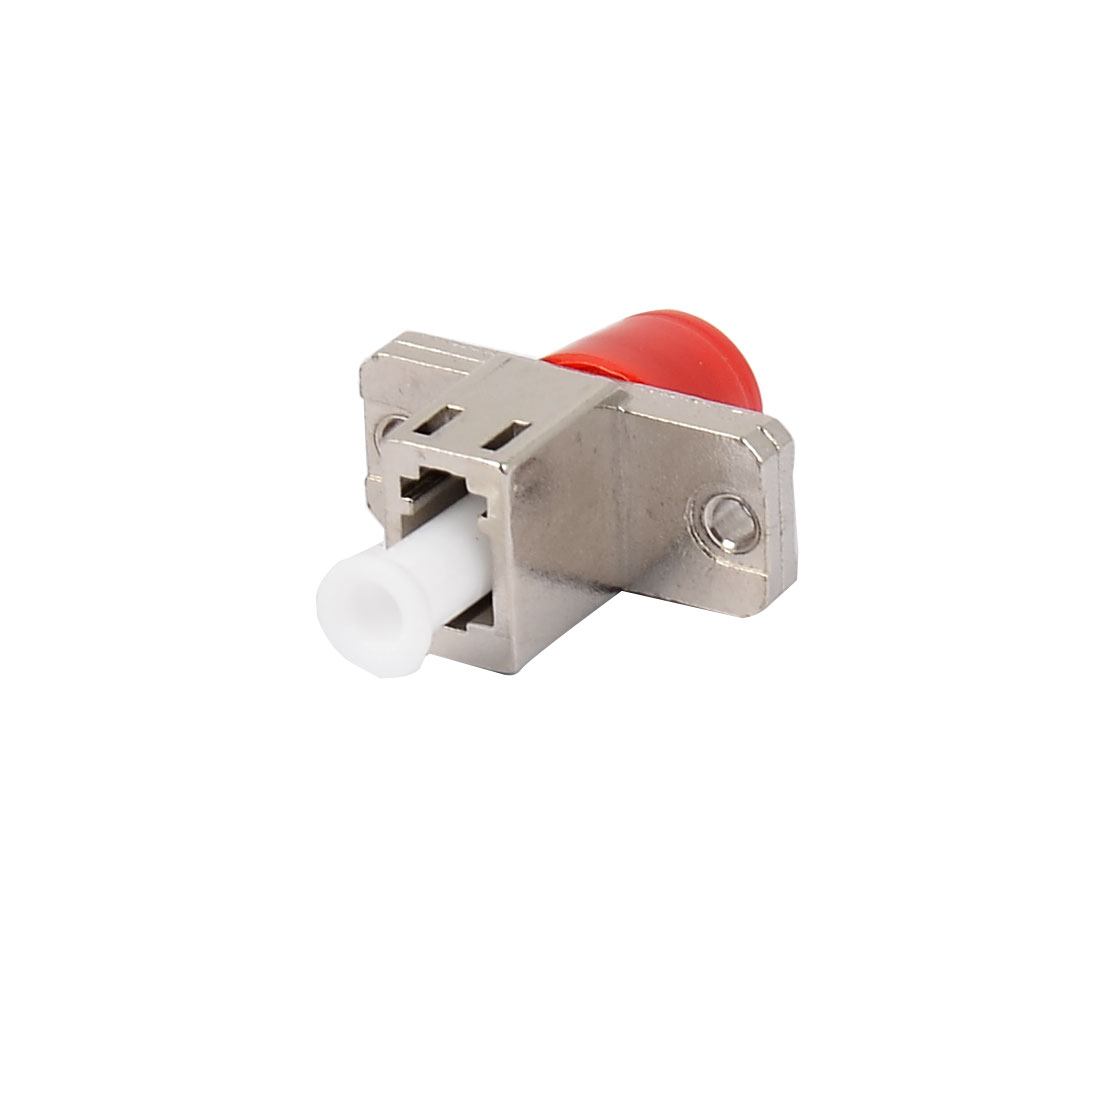 FC-LC Flange Fiber Cable Optical Optic Connector Adapter